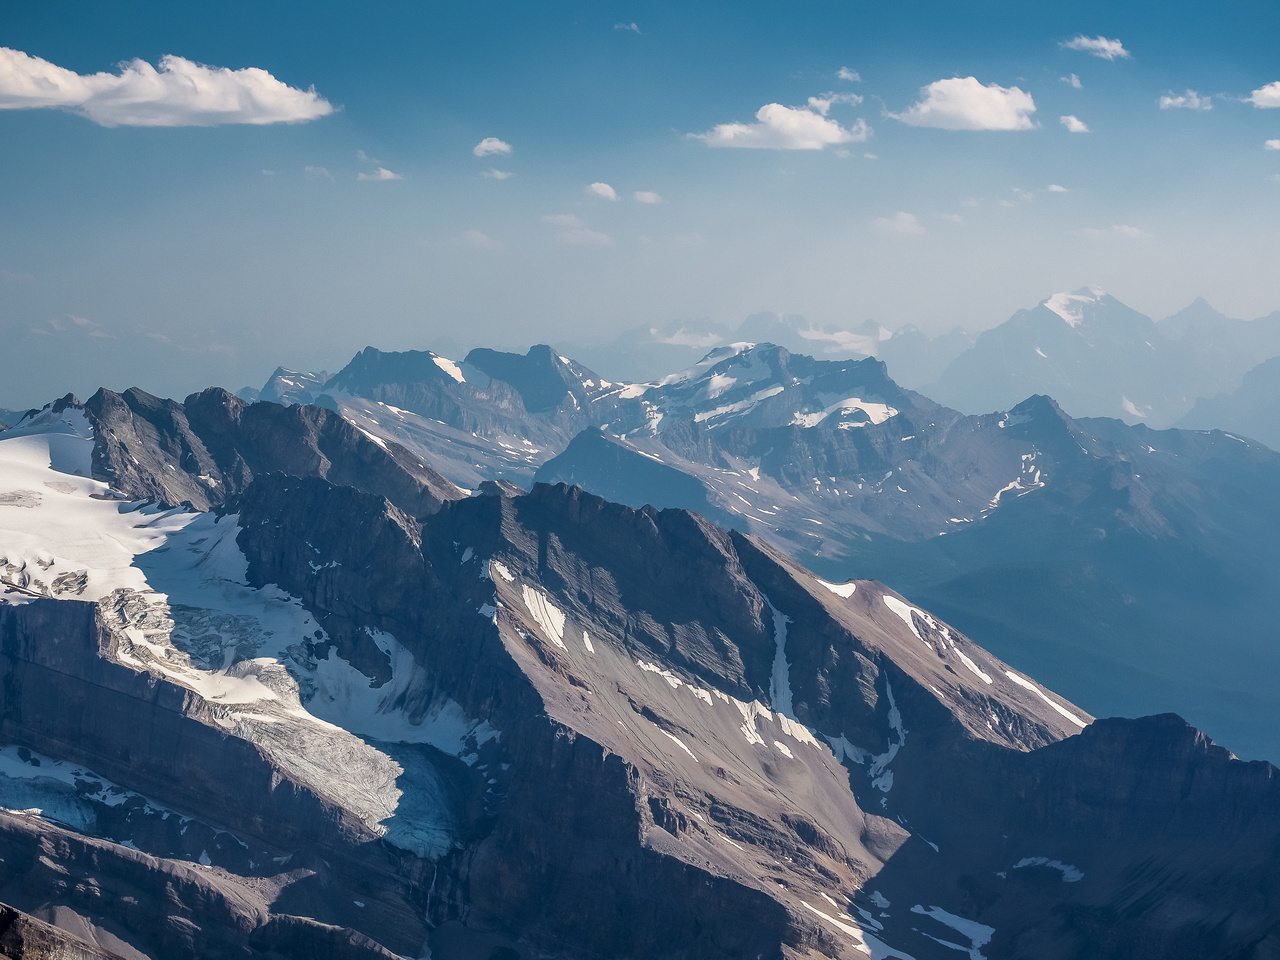 Looking over Cyclone Mountain (L) towards Richardson, Pika and Ptarmigan in the Skoki area and Mount Temple in the smoky haze at distant right.